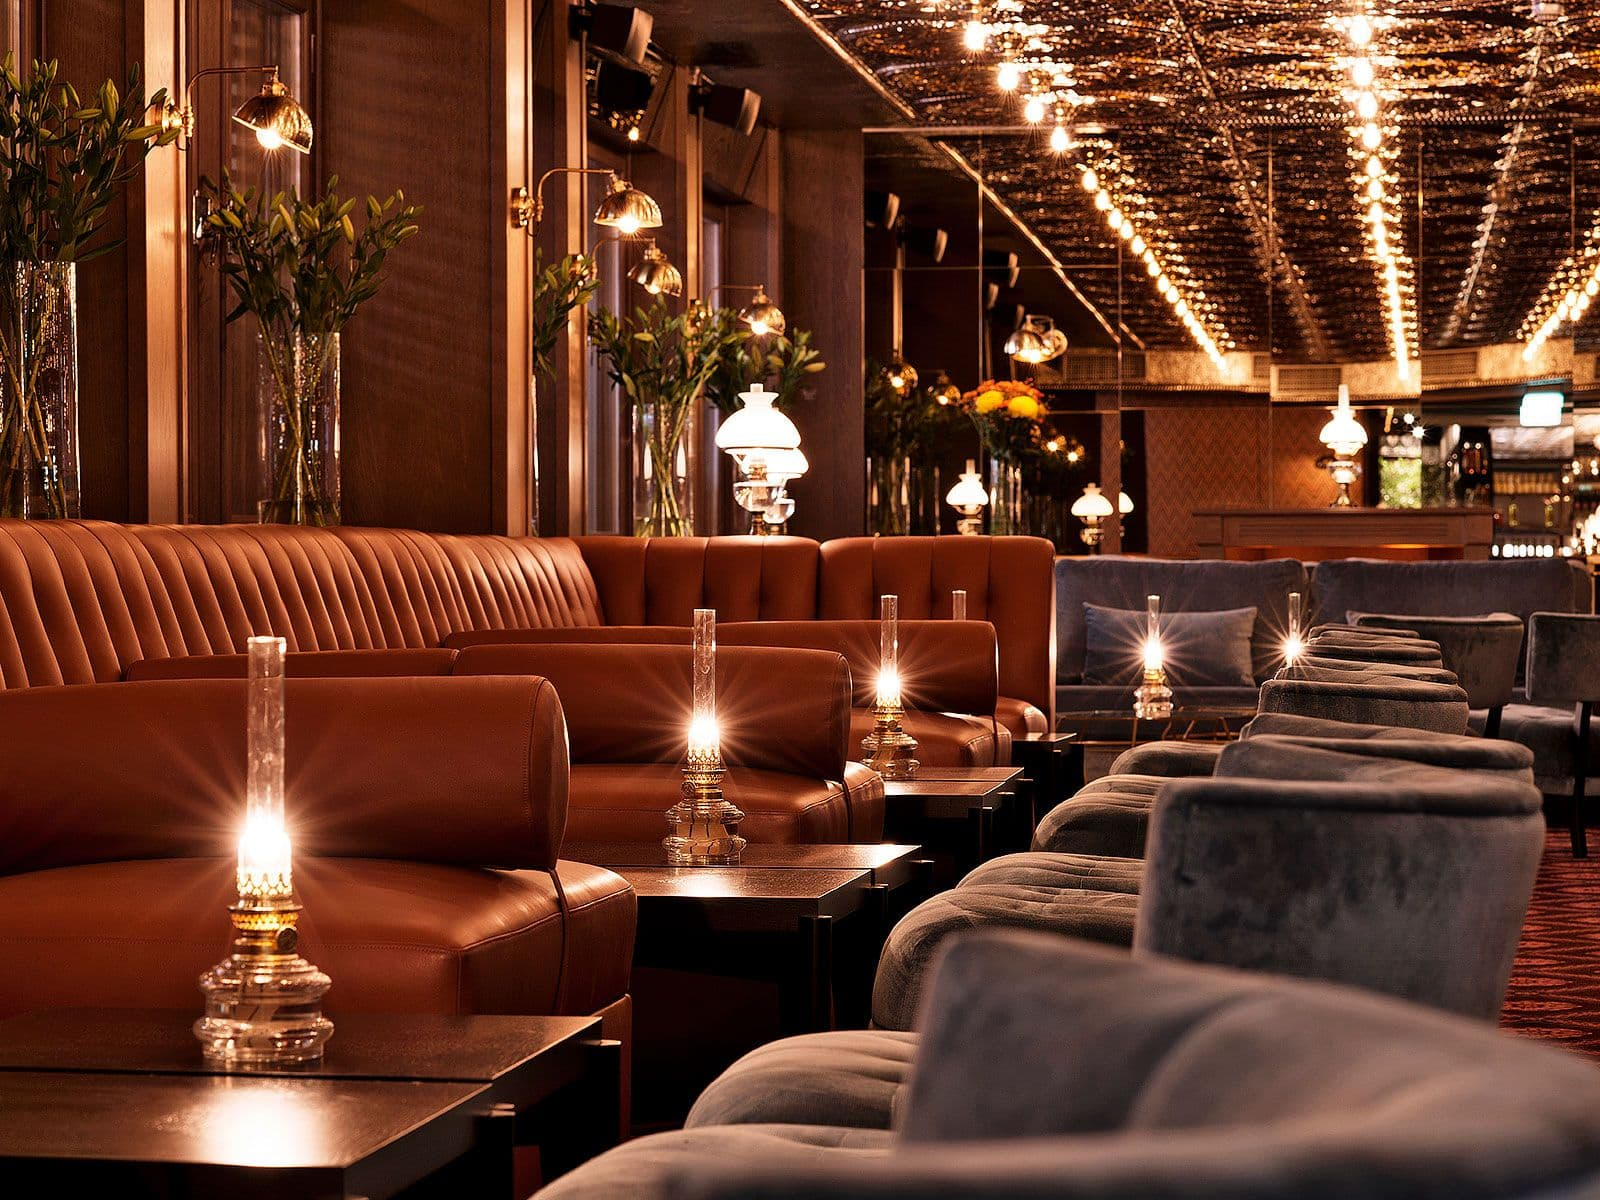 Pictures from Grand Escalier – Restaurant, Bar – Östermalm ...